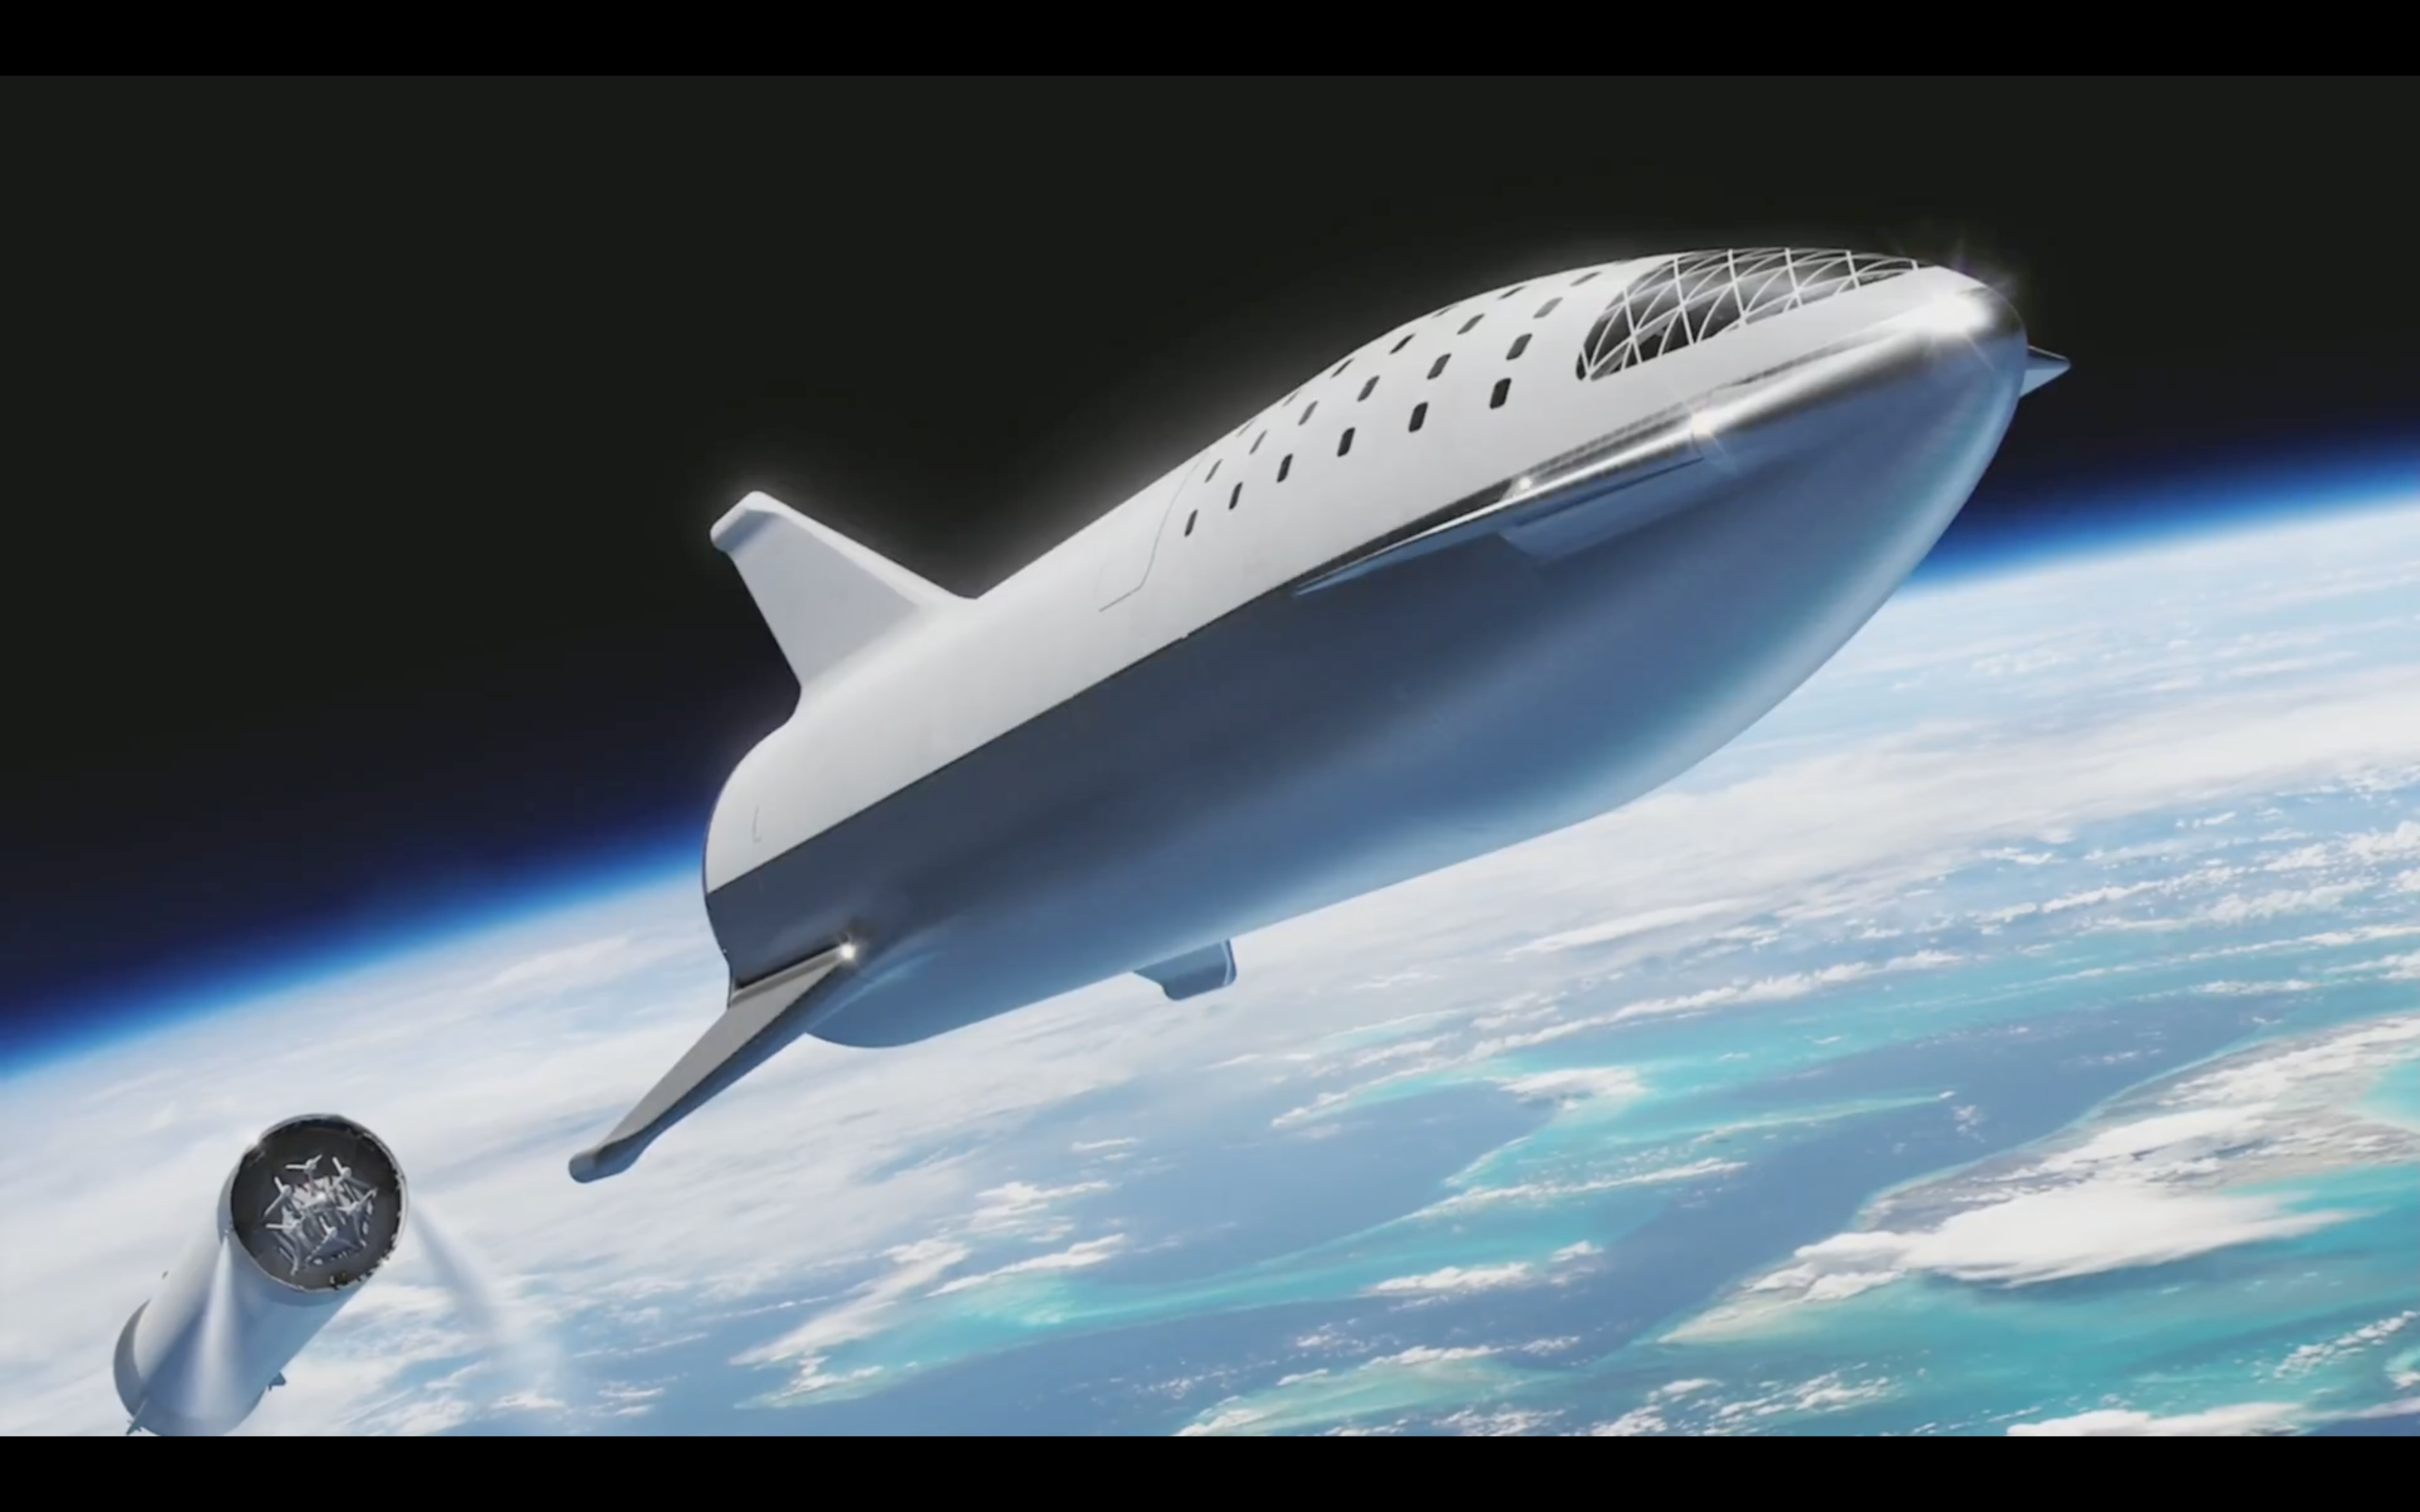 de0dcc9c-2d01-46e4-92b4-584807e1ffa0-Screen_Shot_2018-09-18_at_00.40.05 SpaceX's BFR moon mission and billionaire Yusaku Maezawa: Things we learned